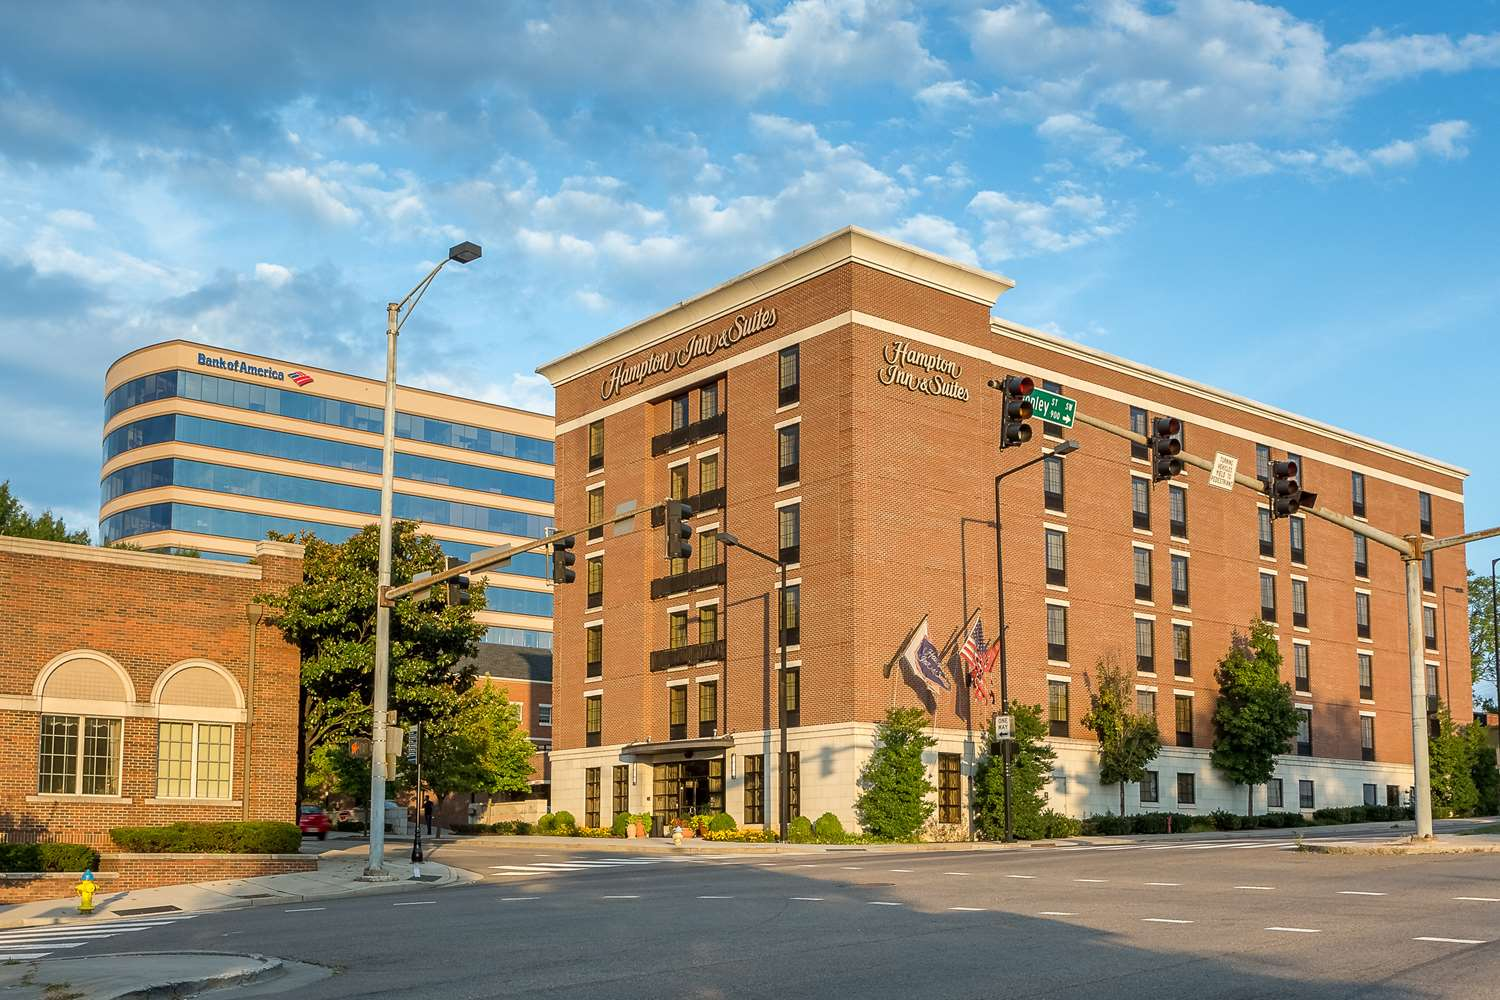 Hampton Inn & Suites Downtown Knoxville